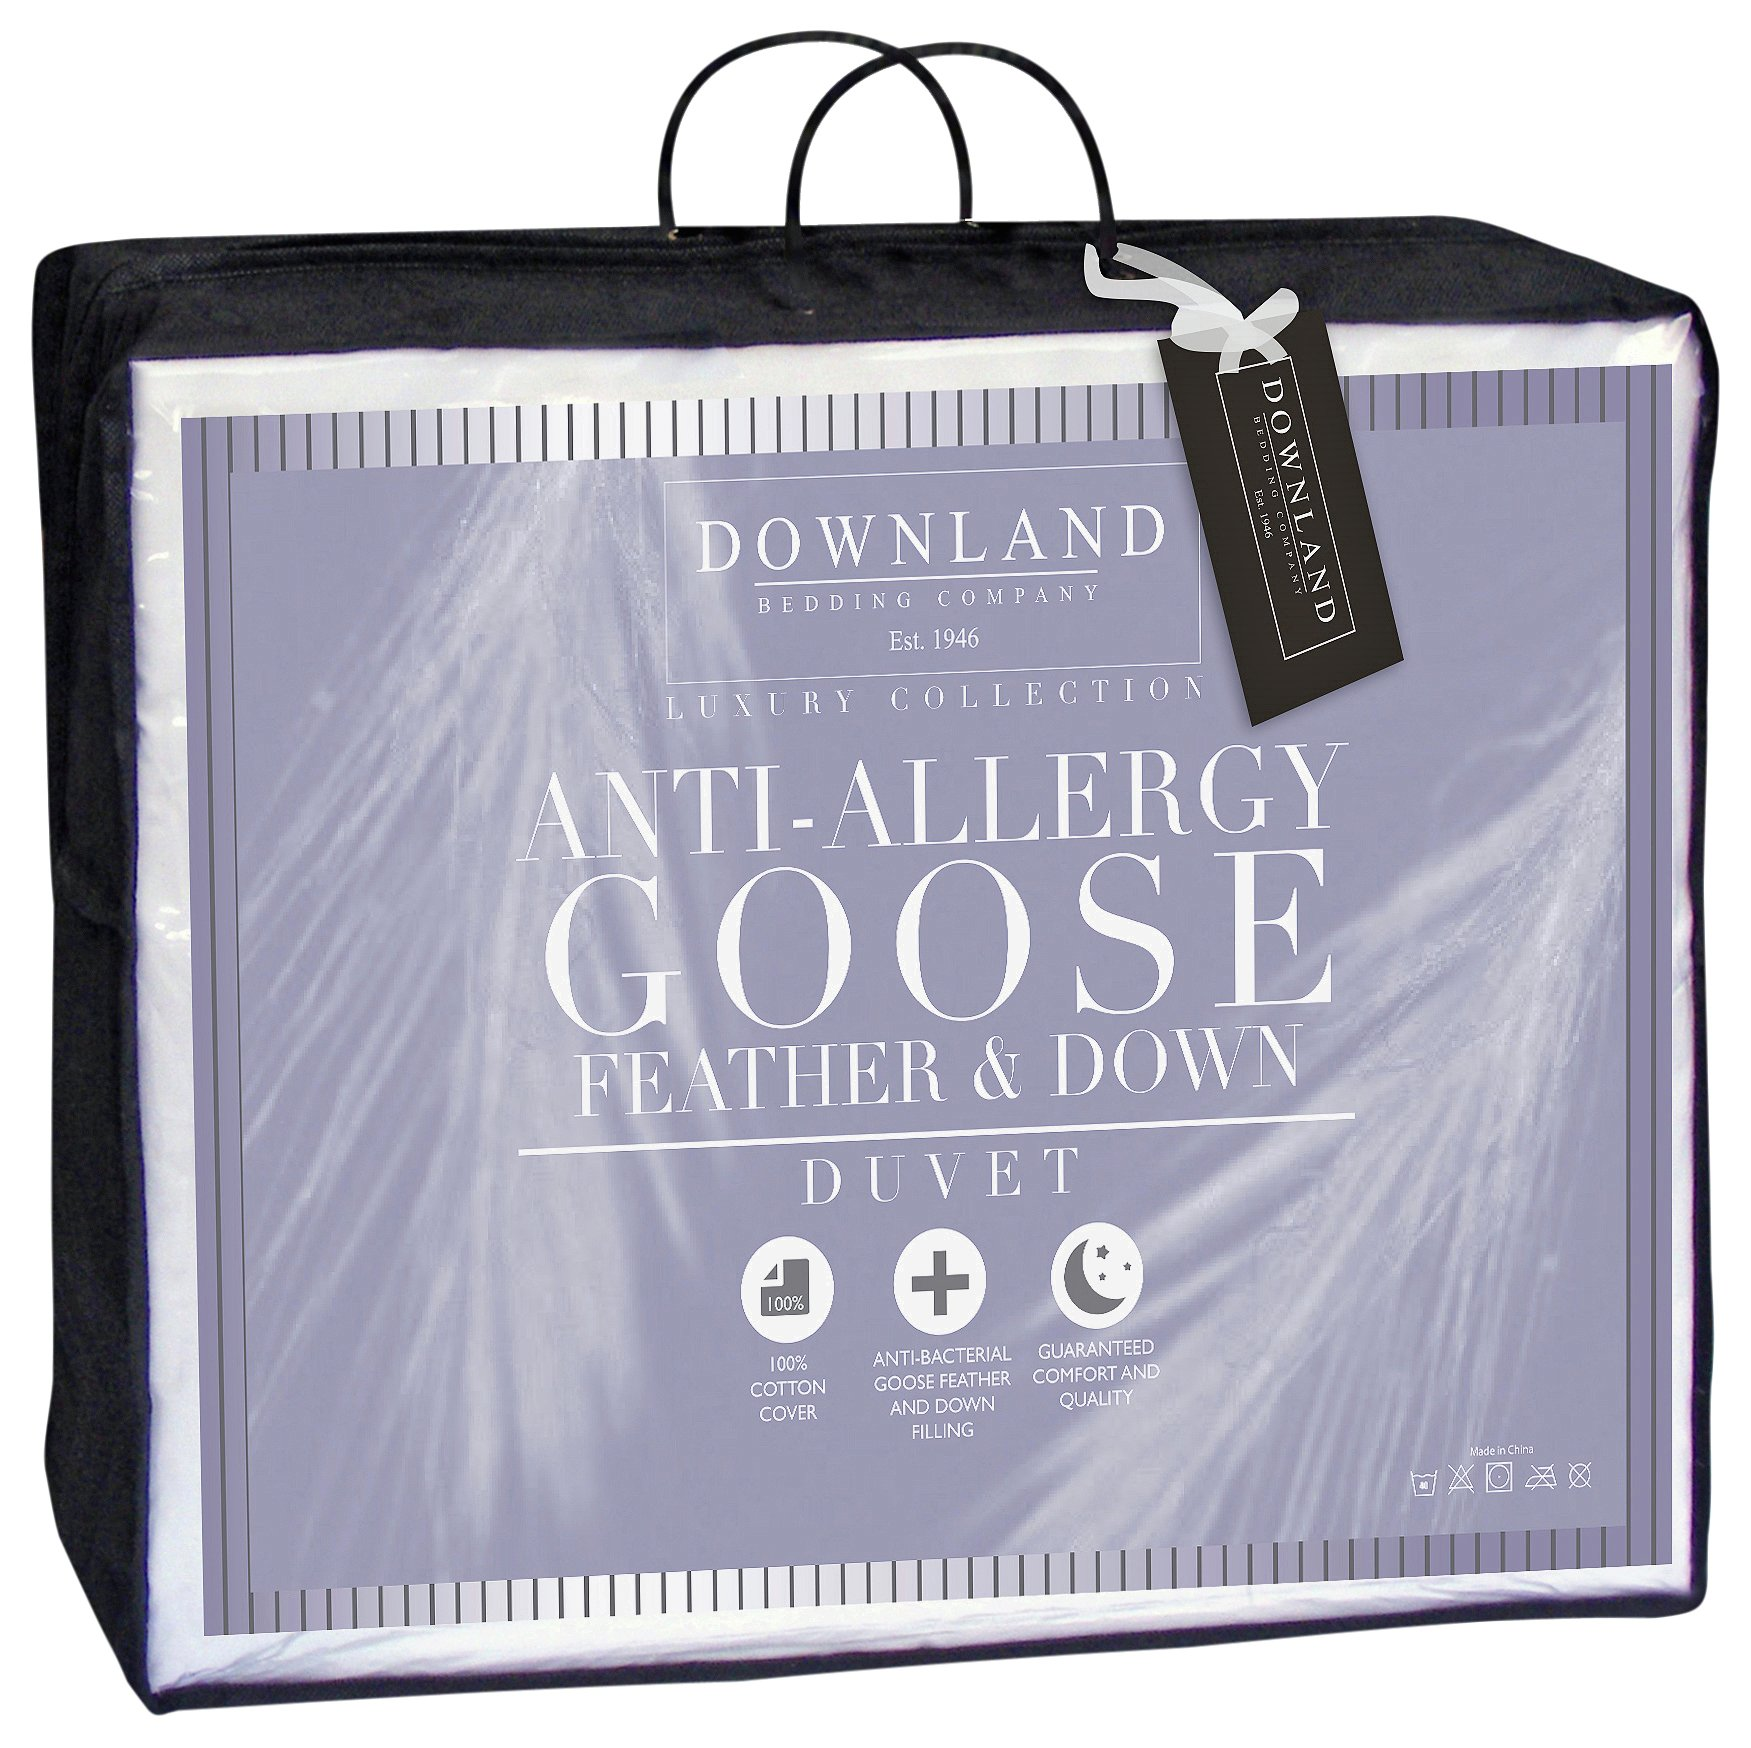 Downland 15 Tog Goose, Feather and Down Duvets - Double